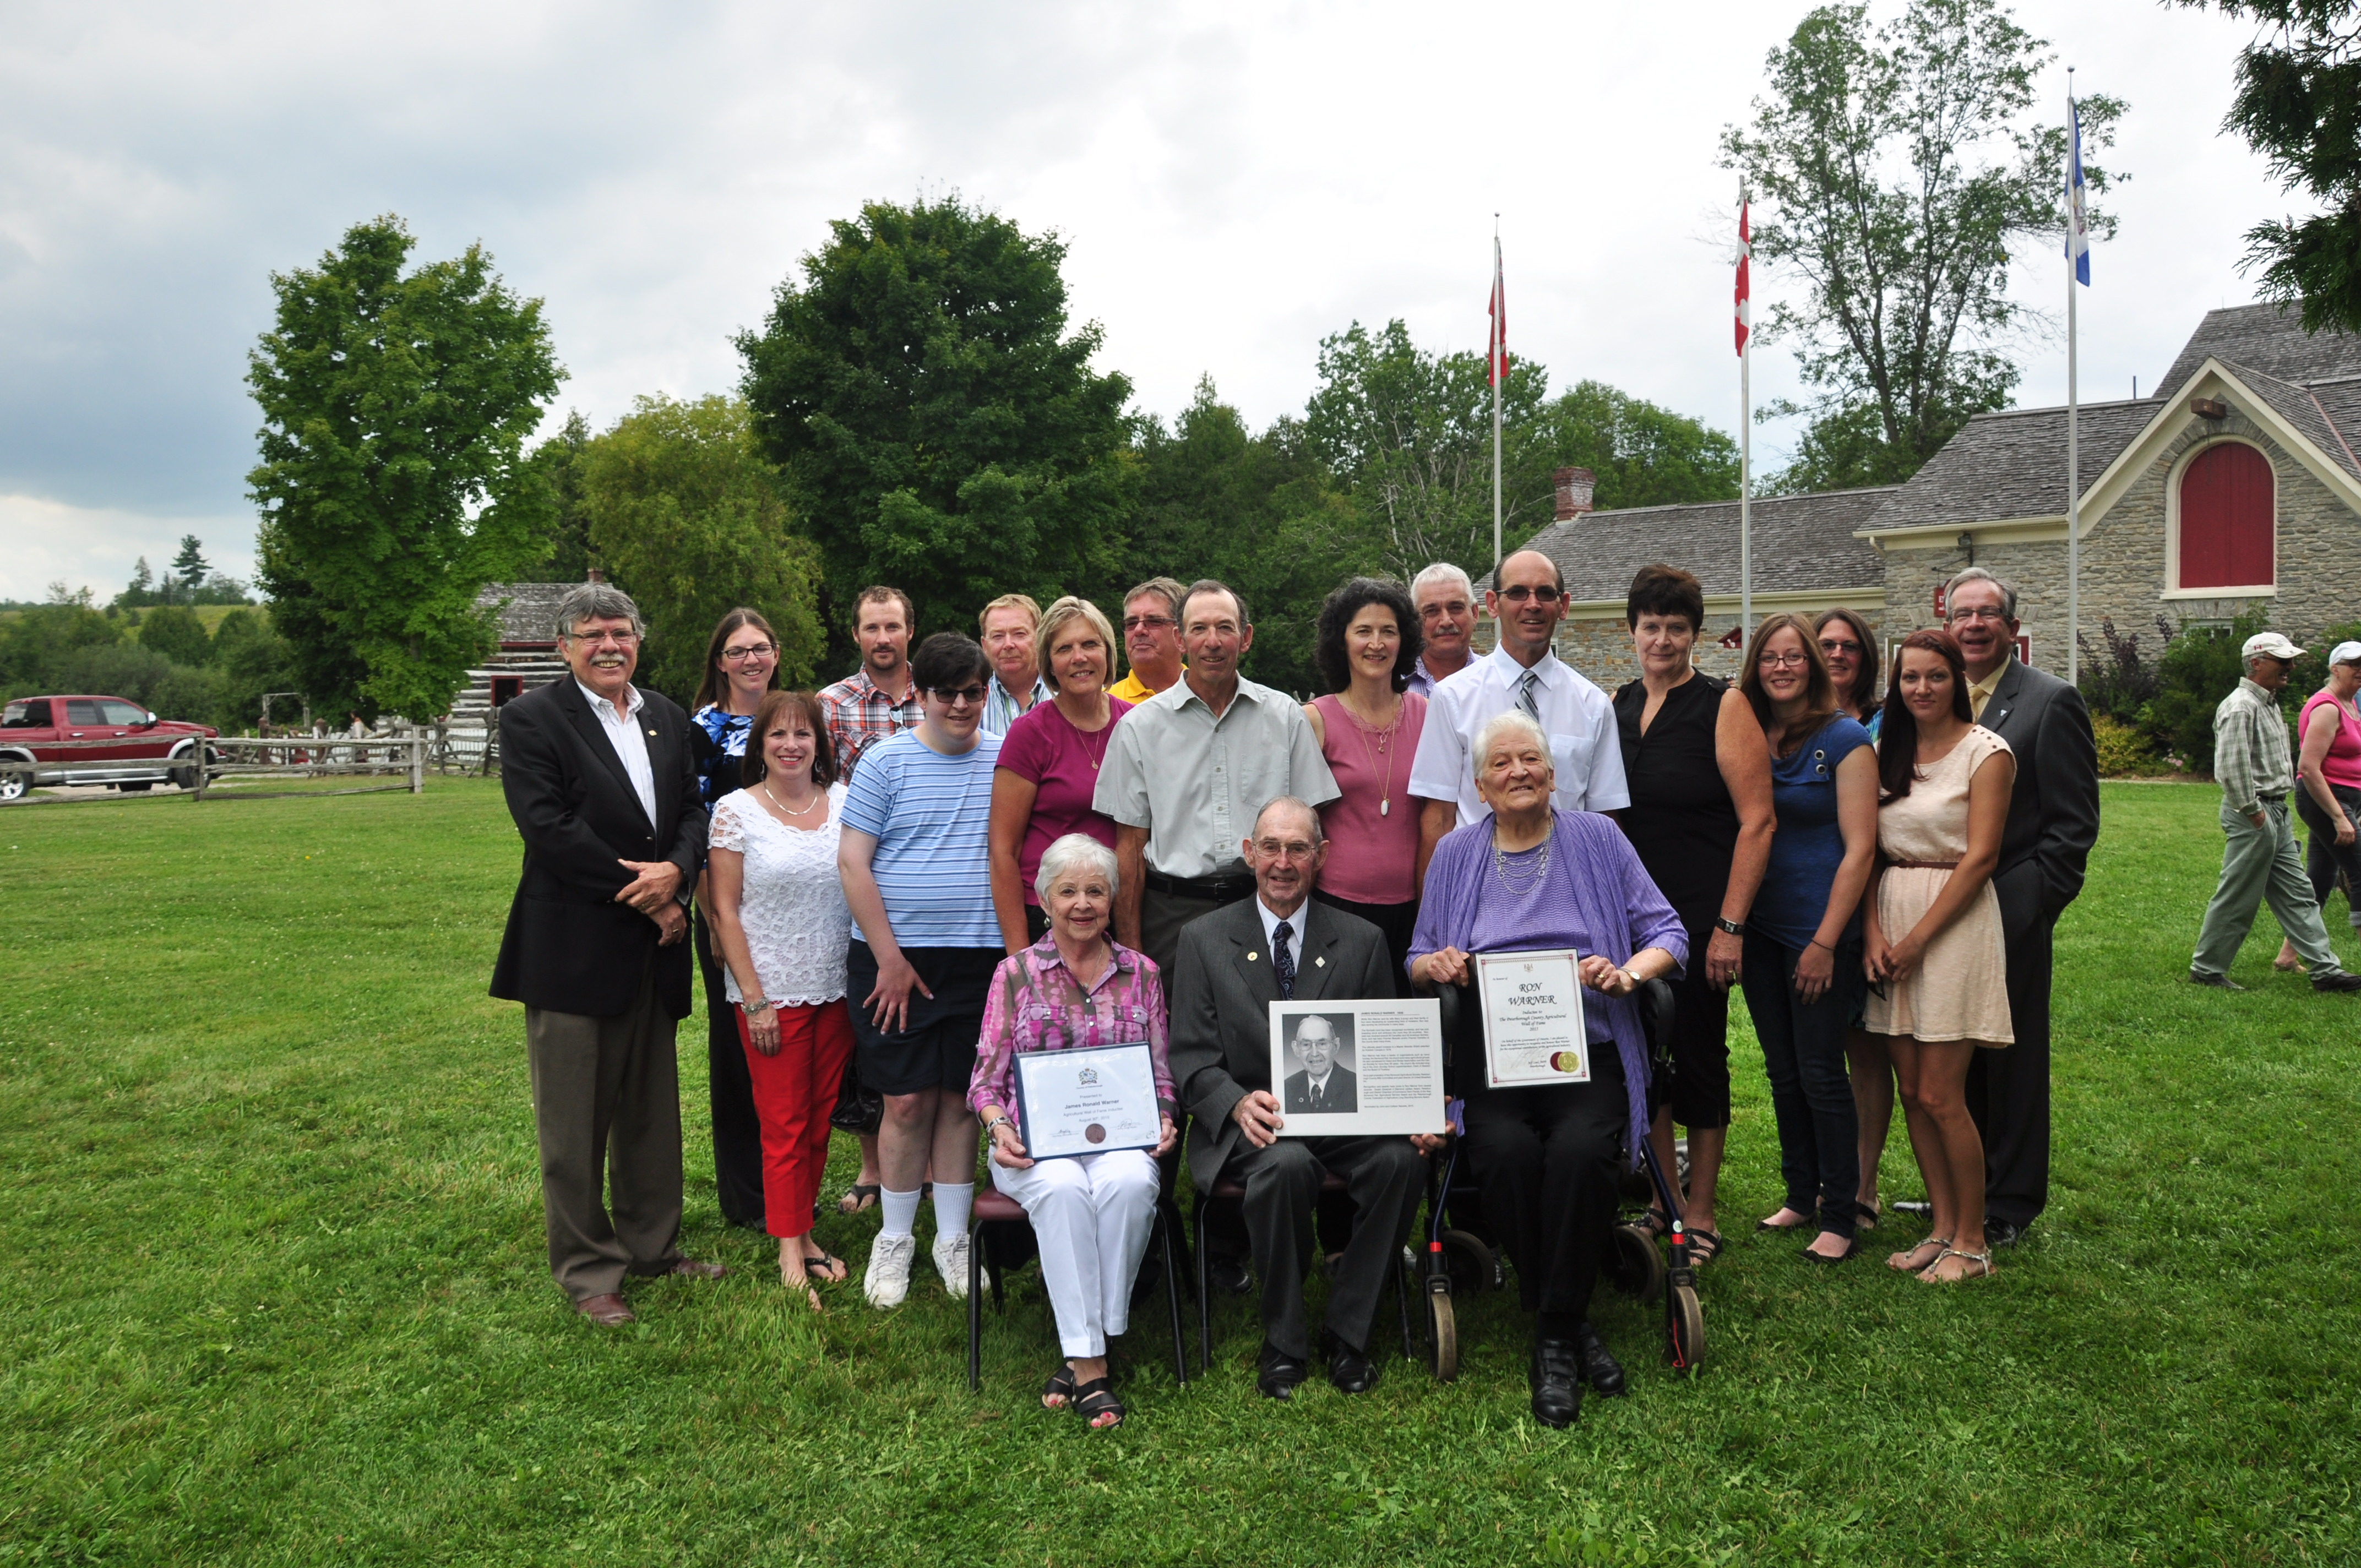 Ron Warner and family with dignitaries